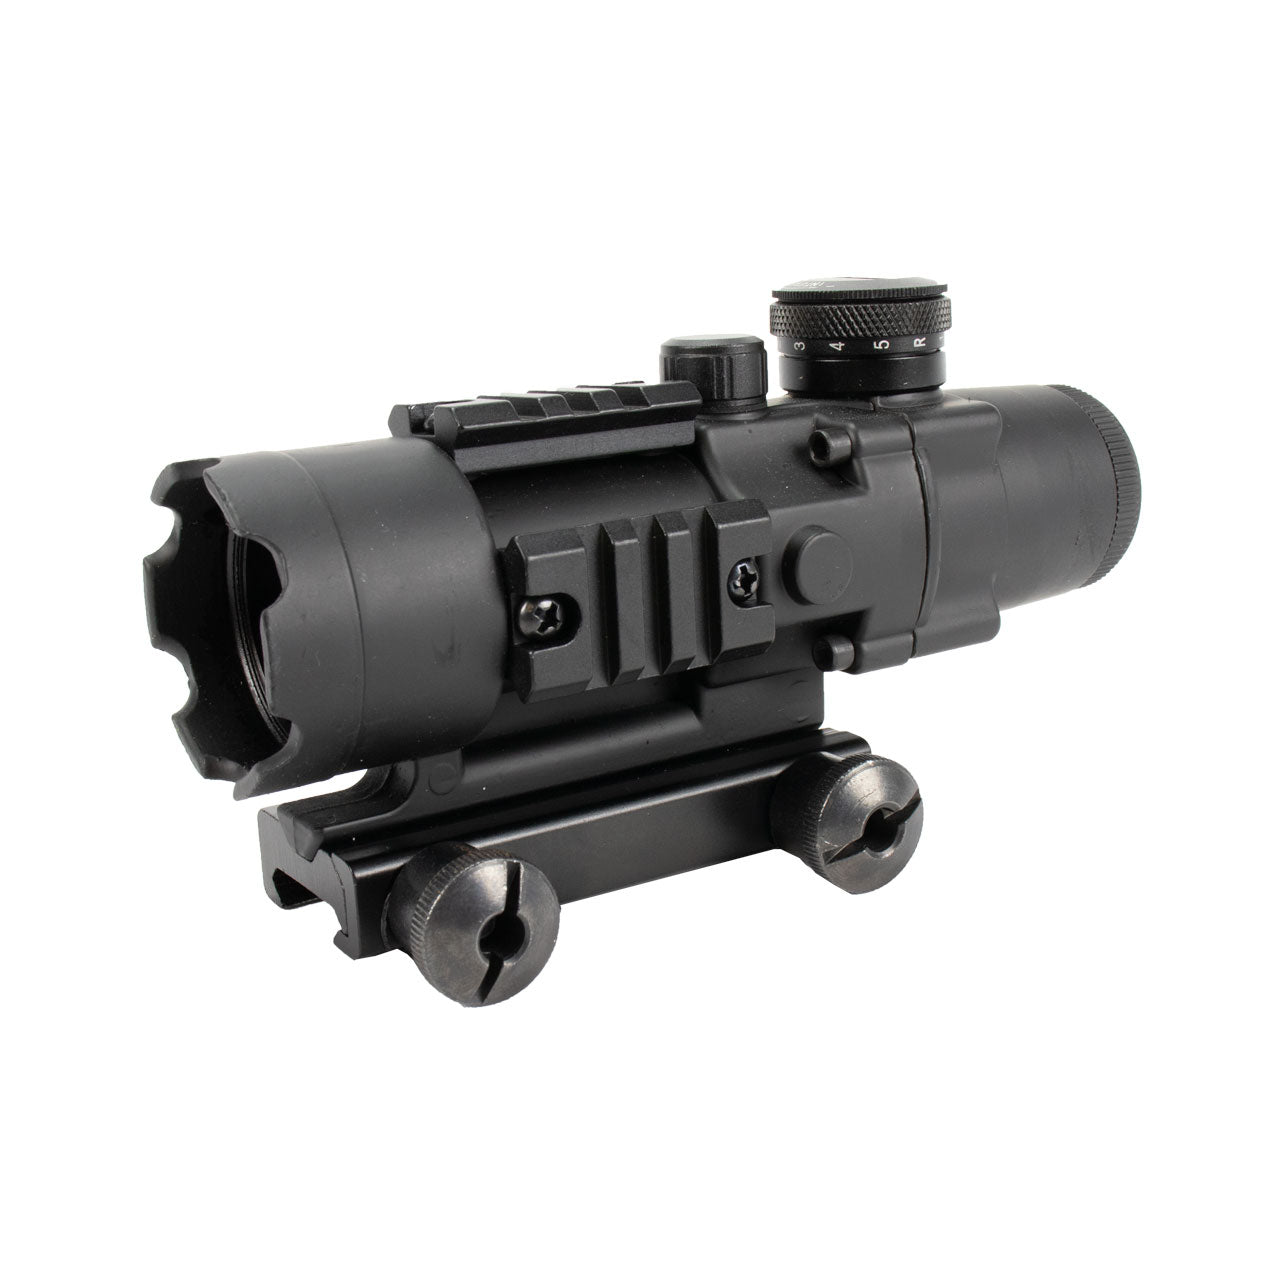 Matrix 4x32 Compact Scope with Illuminated Reticle